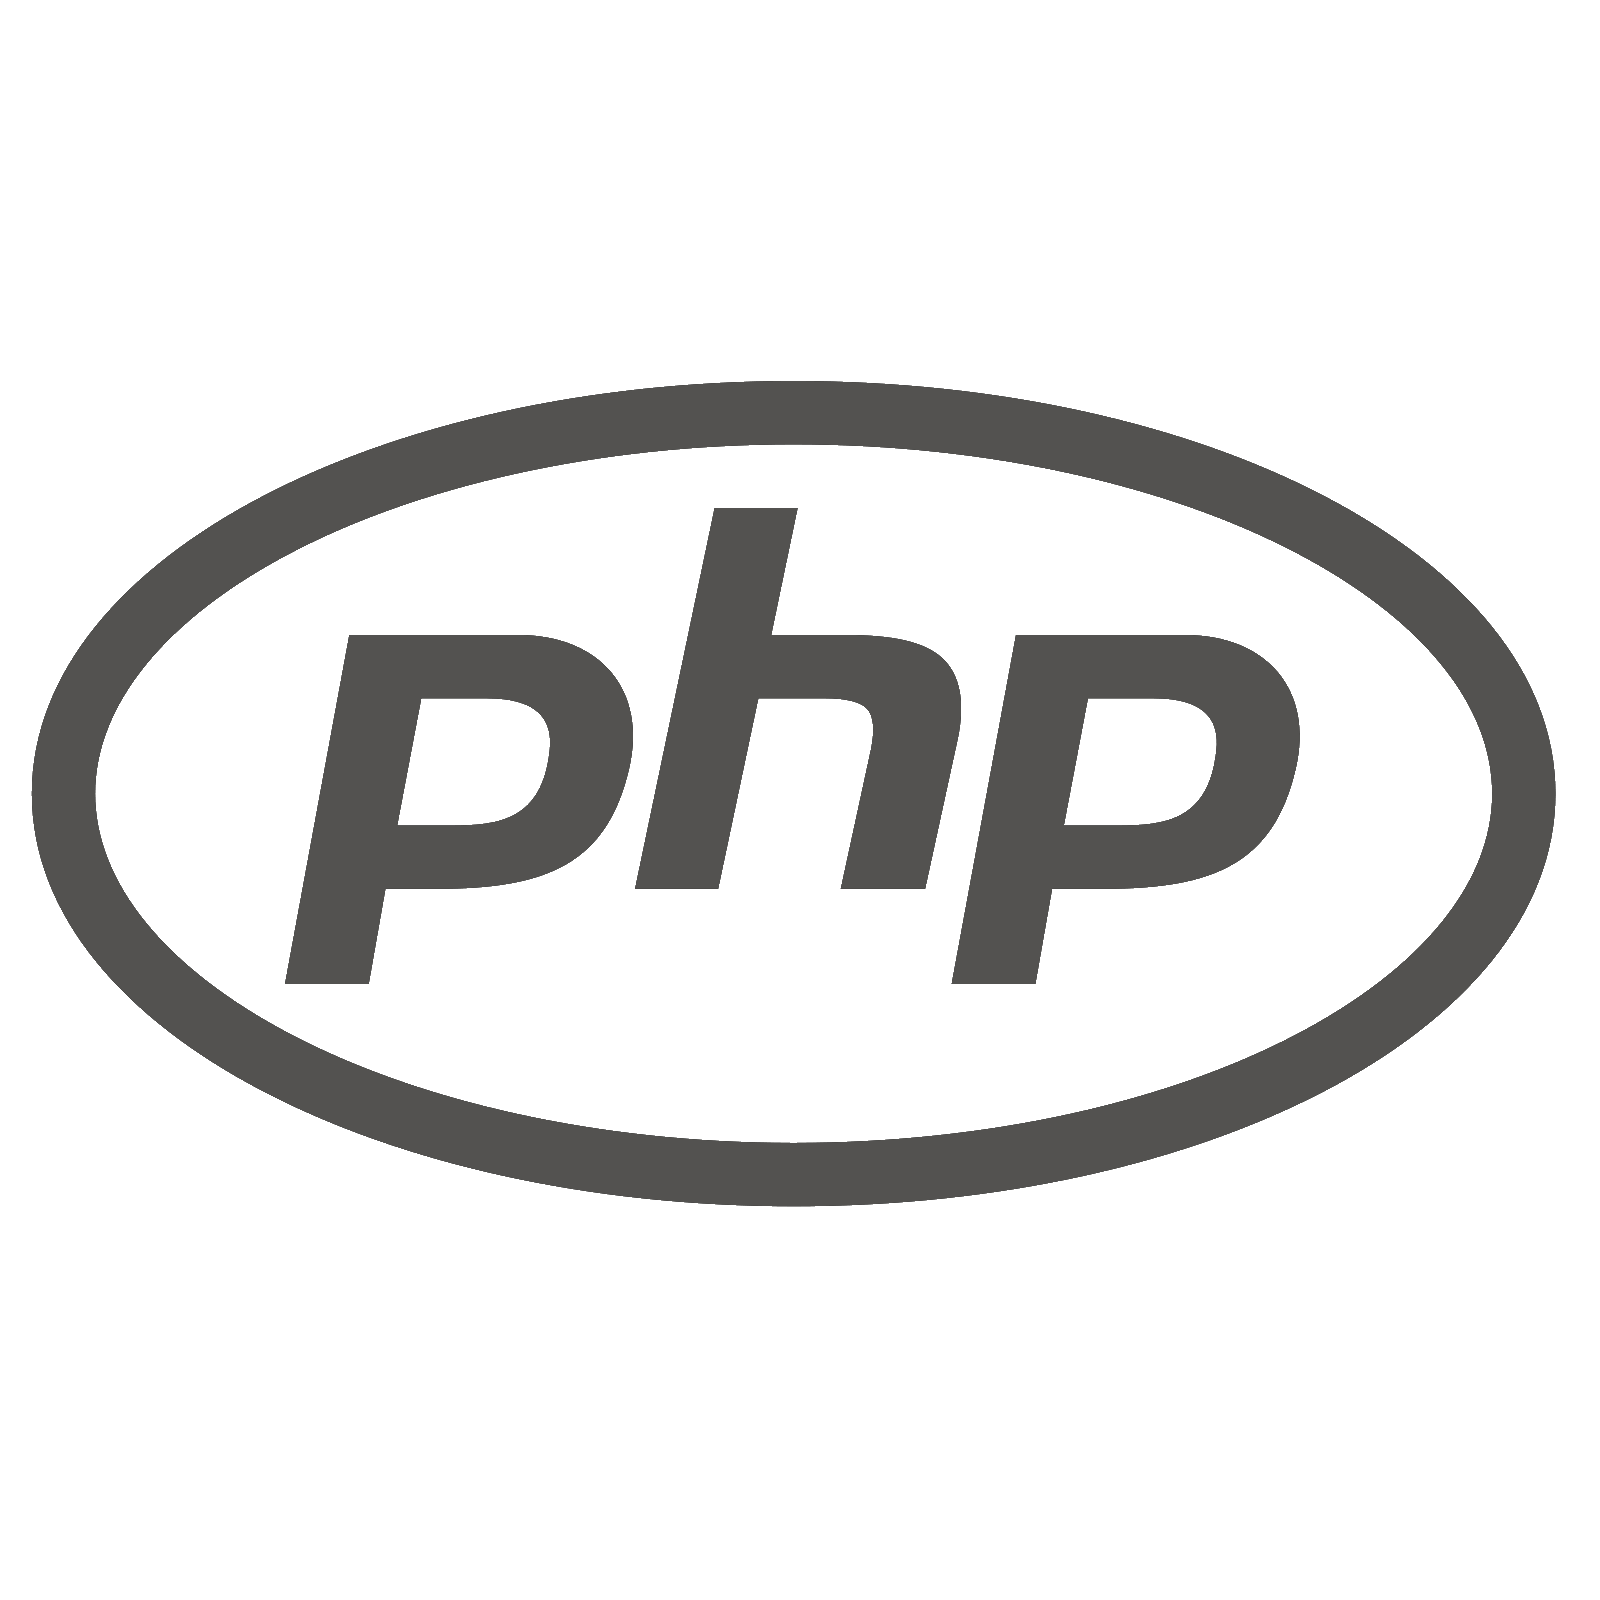 Logo PHP Computer Icons Portable Network Graphics Emblem.